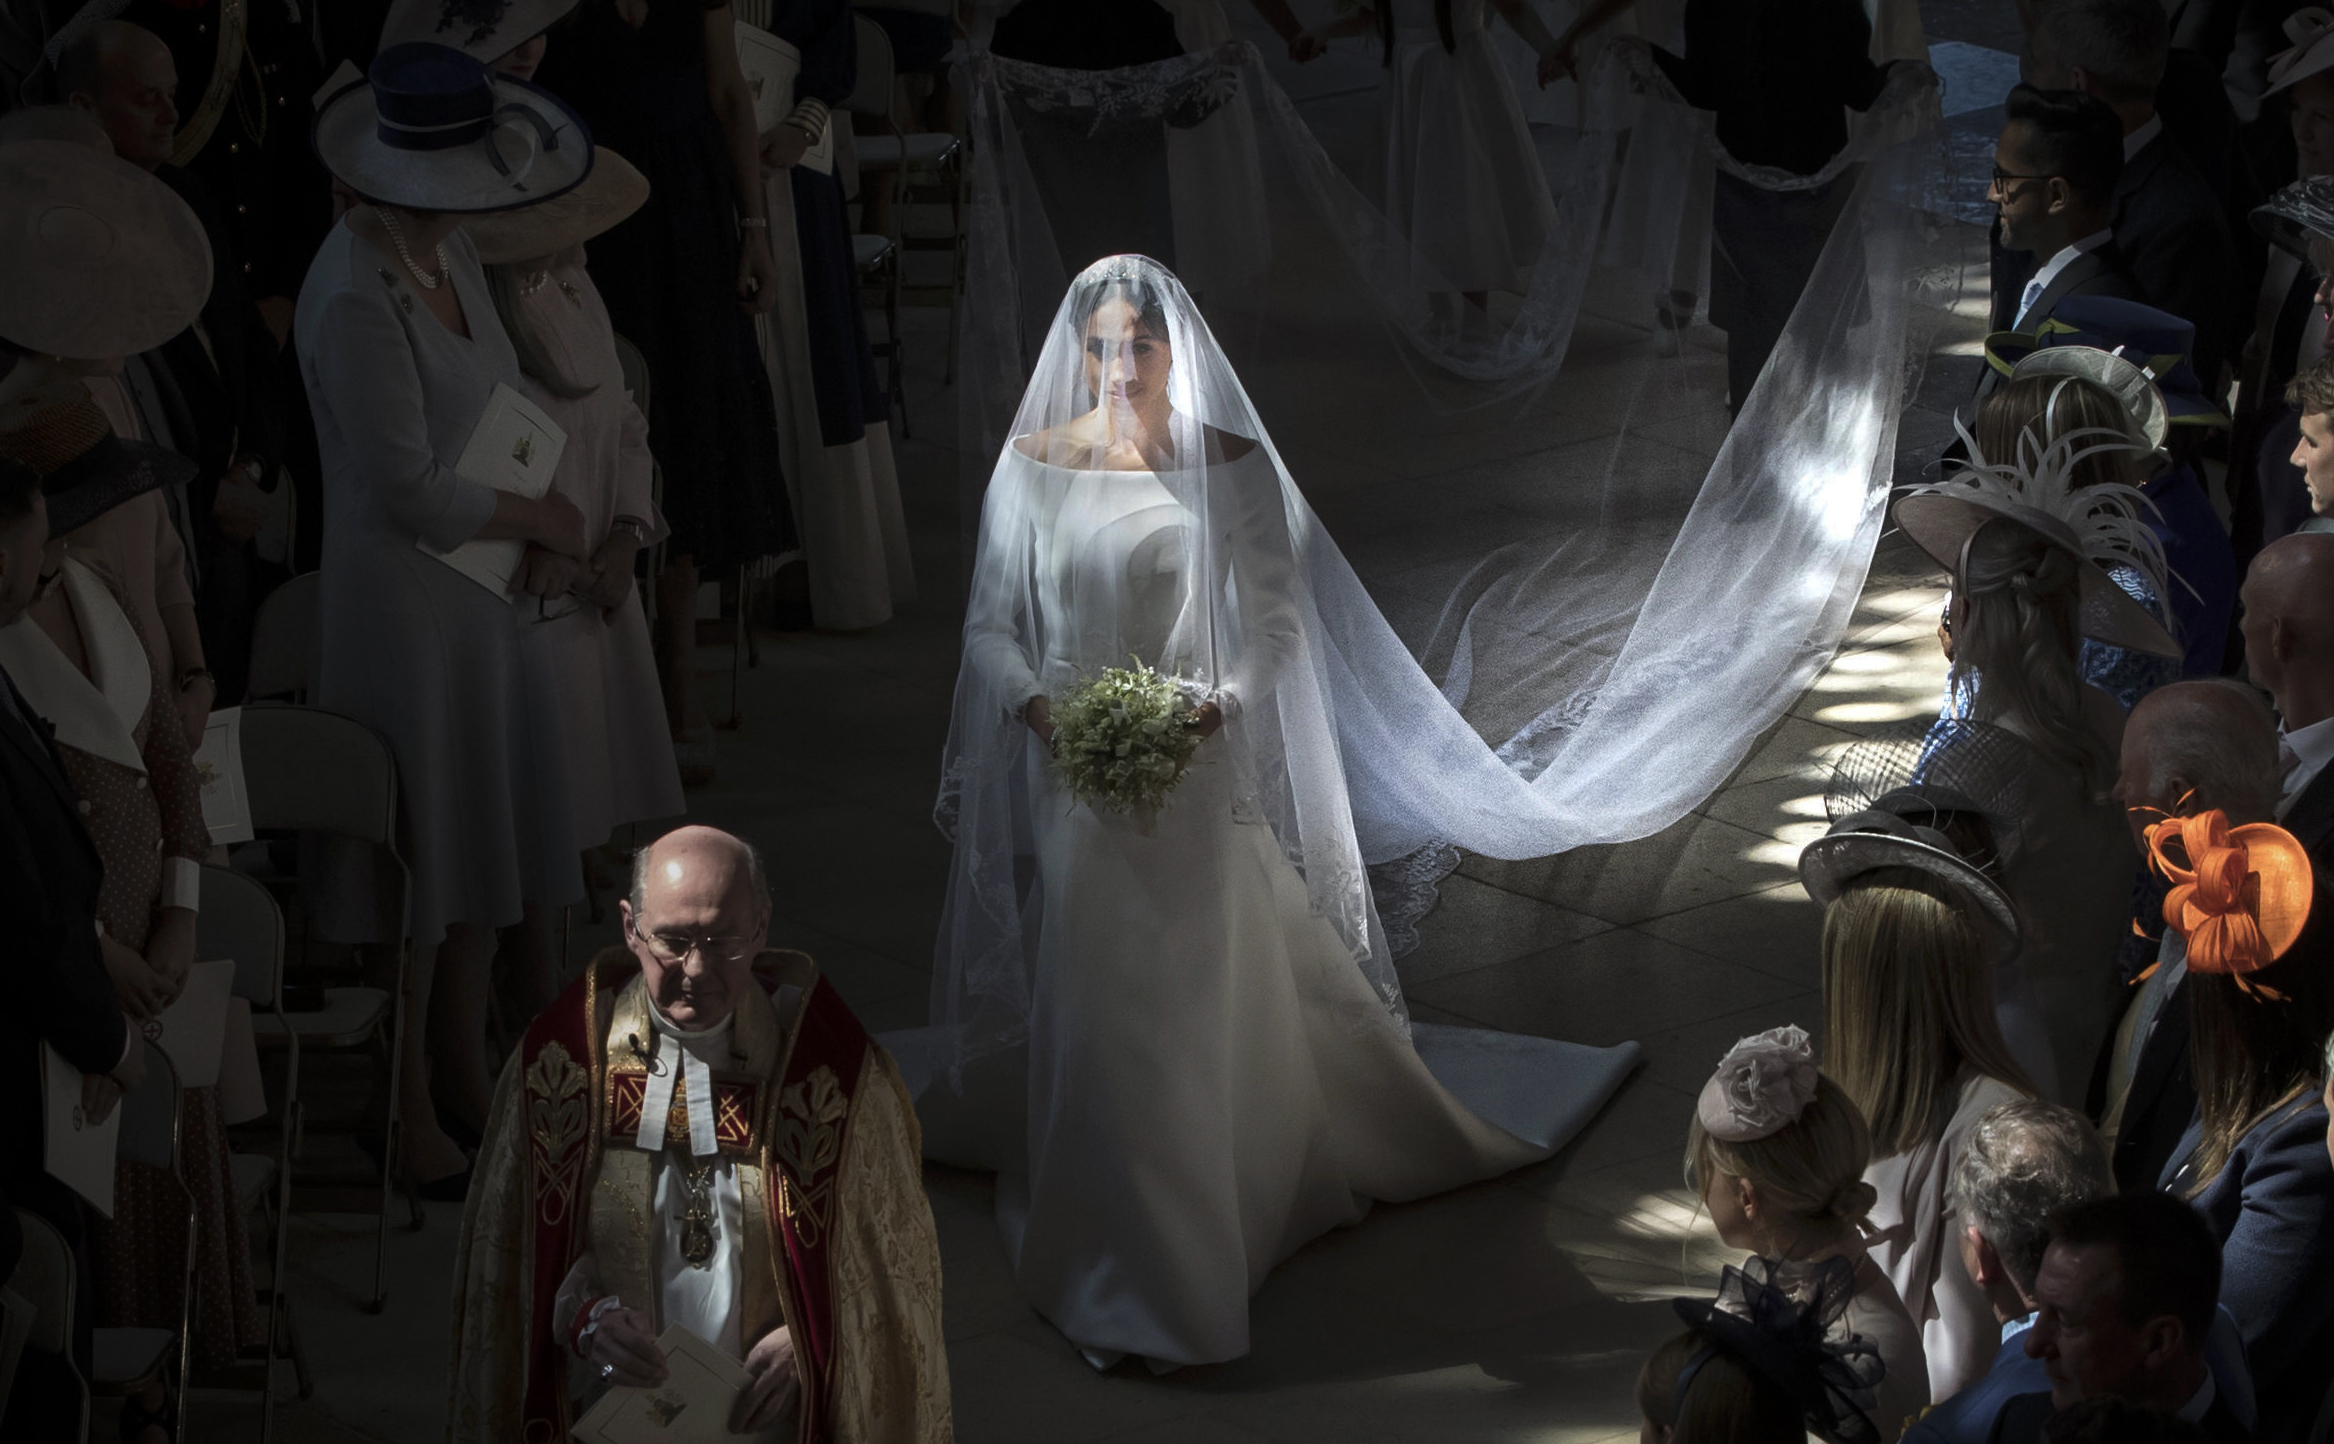 Markle walks down the aisle in St. George's Chapel.